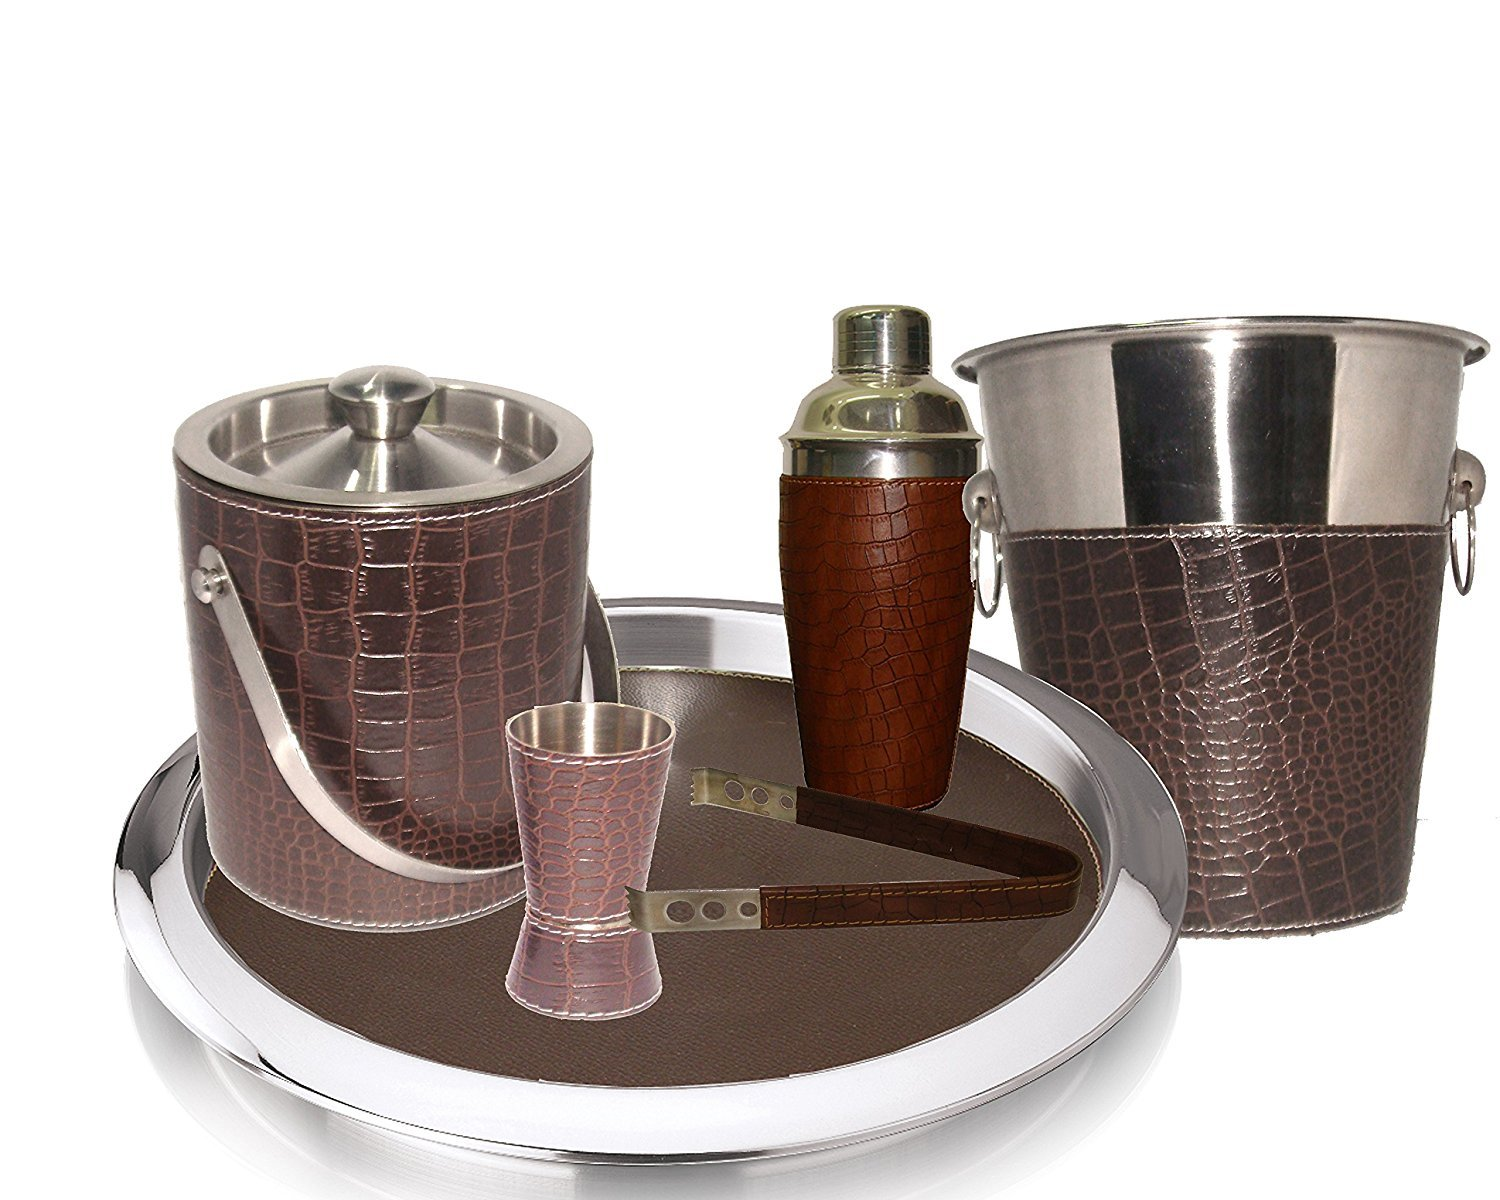 King International Stainless Steel Pure Leather Bar Set Set of 6 Pieces Ice Bucket,Tong,Cocktail Shaker,Jigger,Bar Tray,Wine Cooler